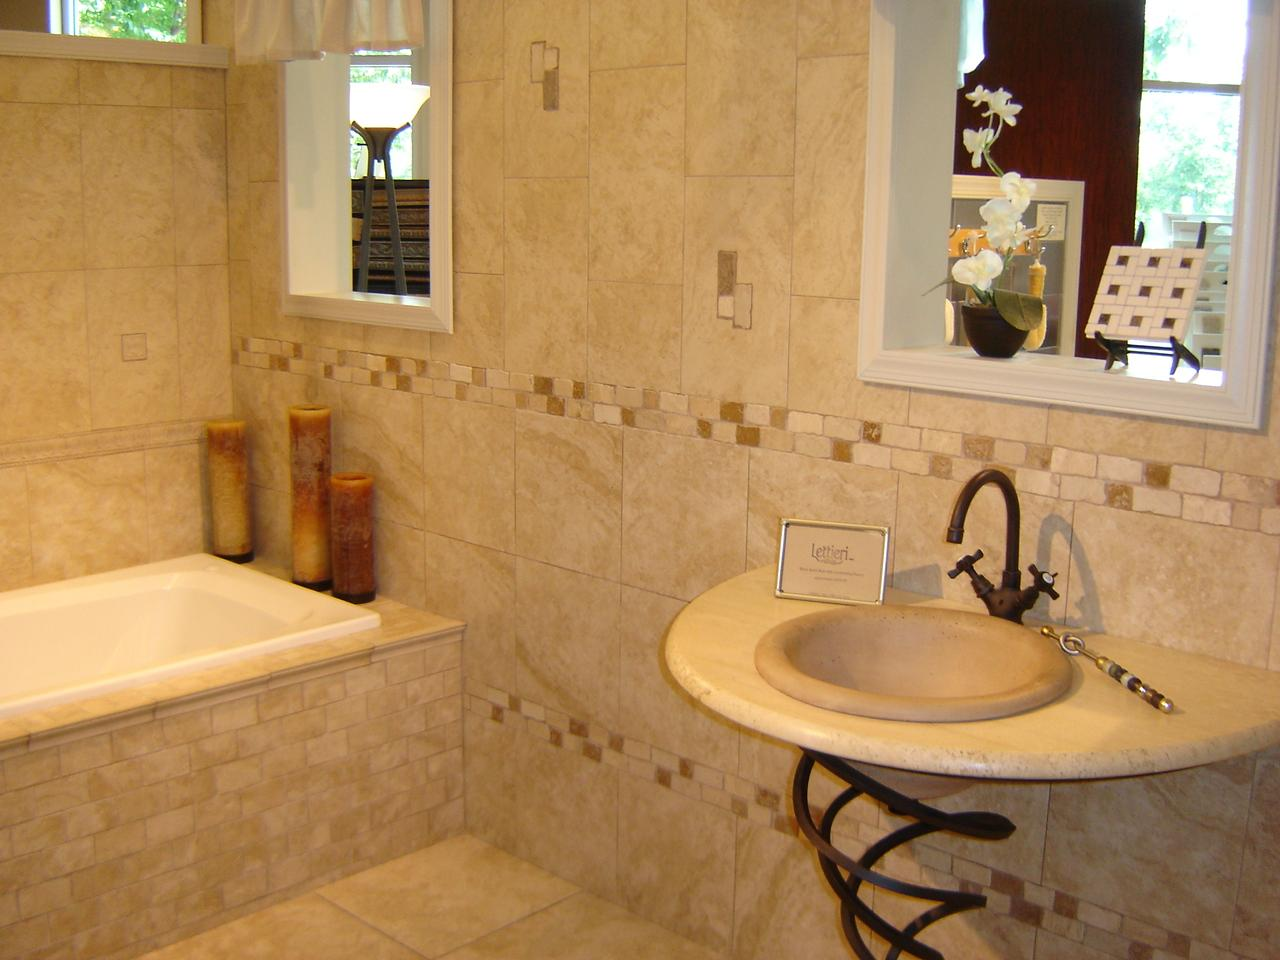 Bathroom tile design ideas for Bathroom tub tile design ideas